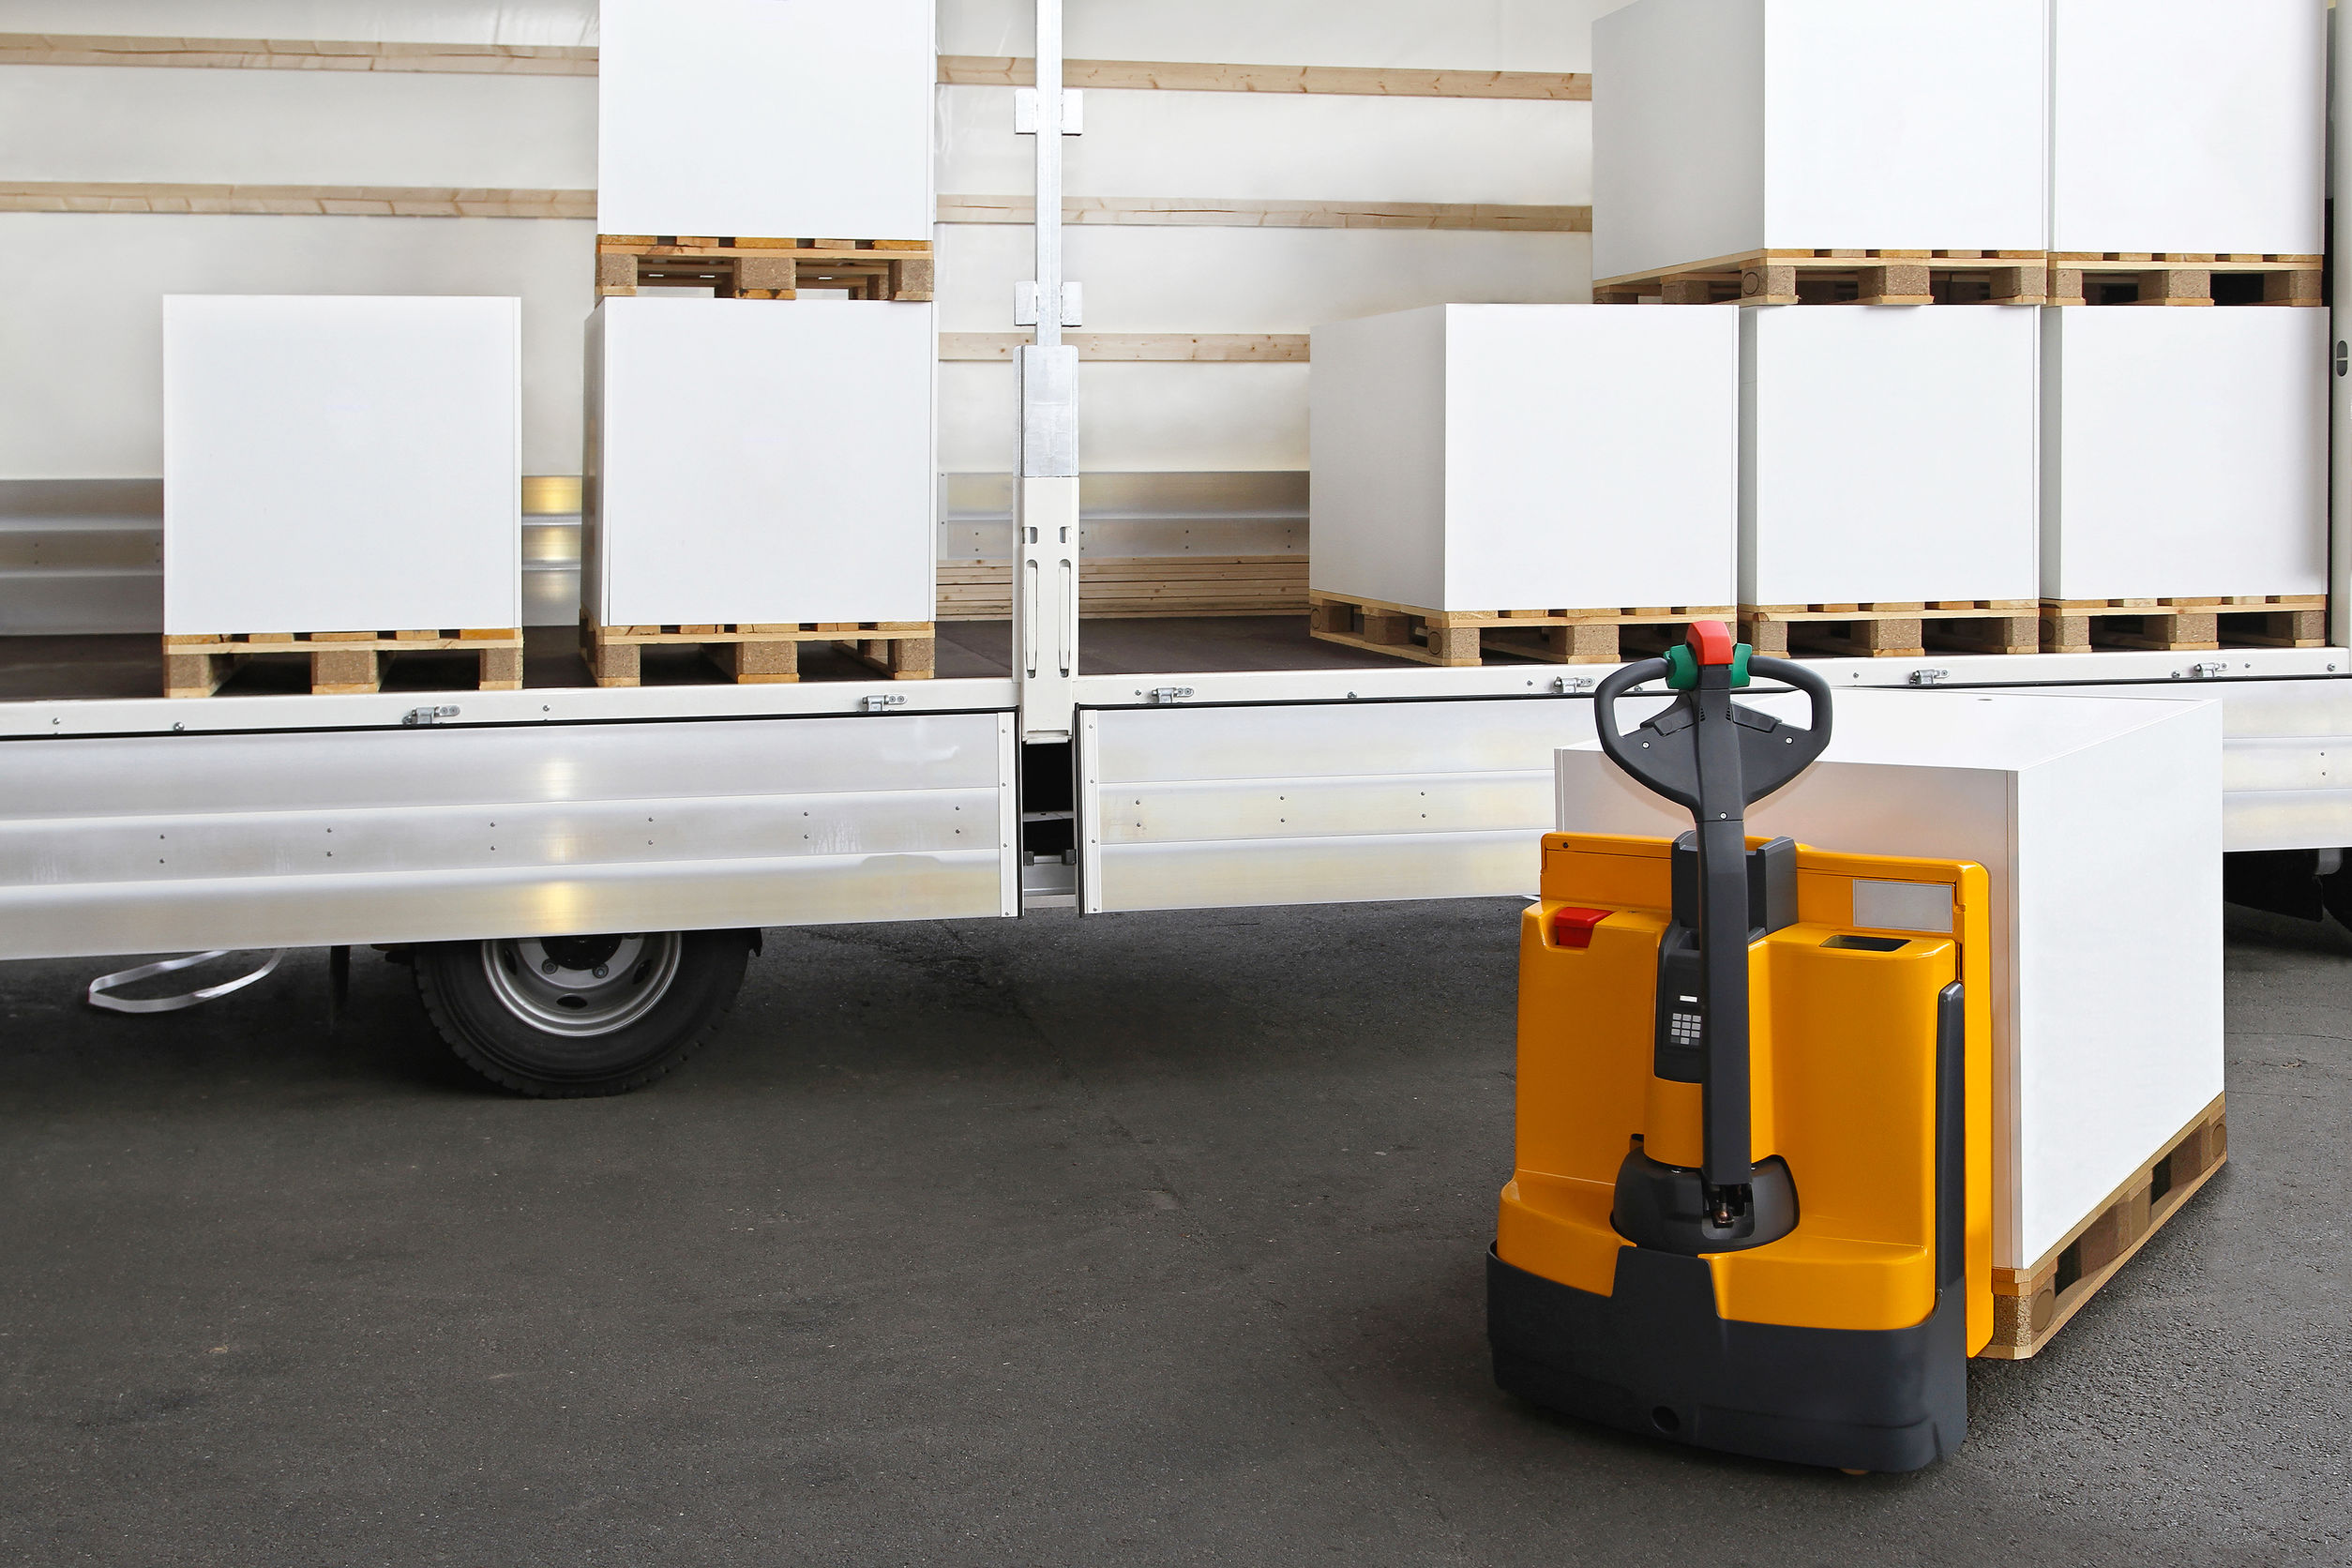 Forklift loading pallets with paper in truck